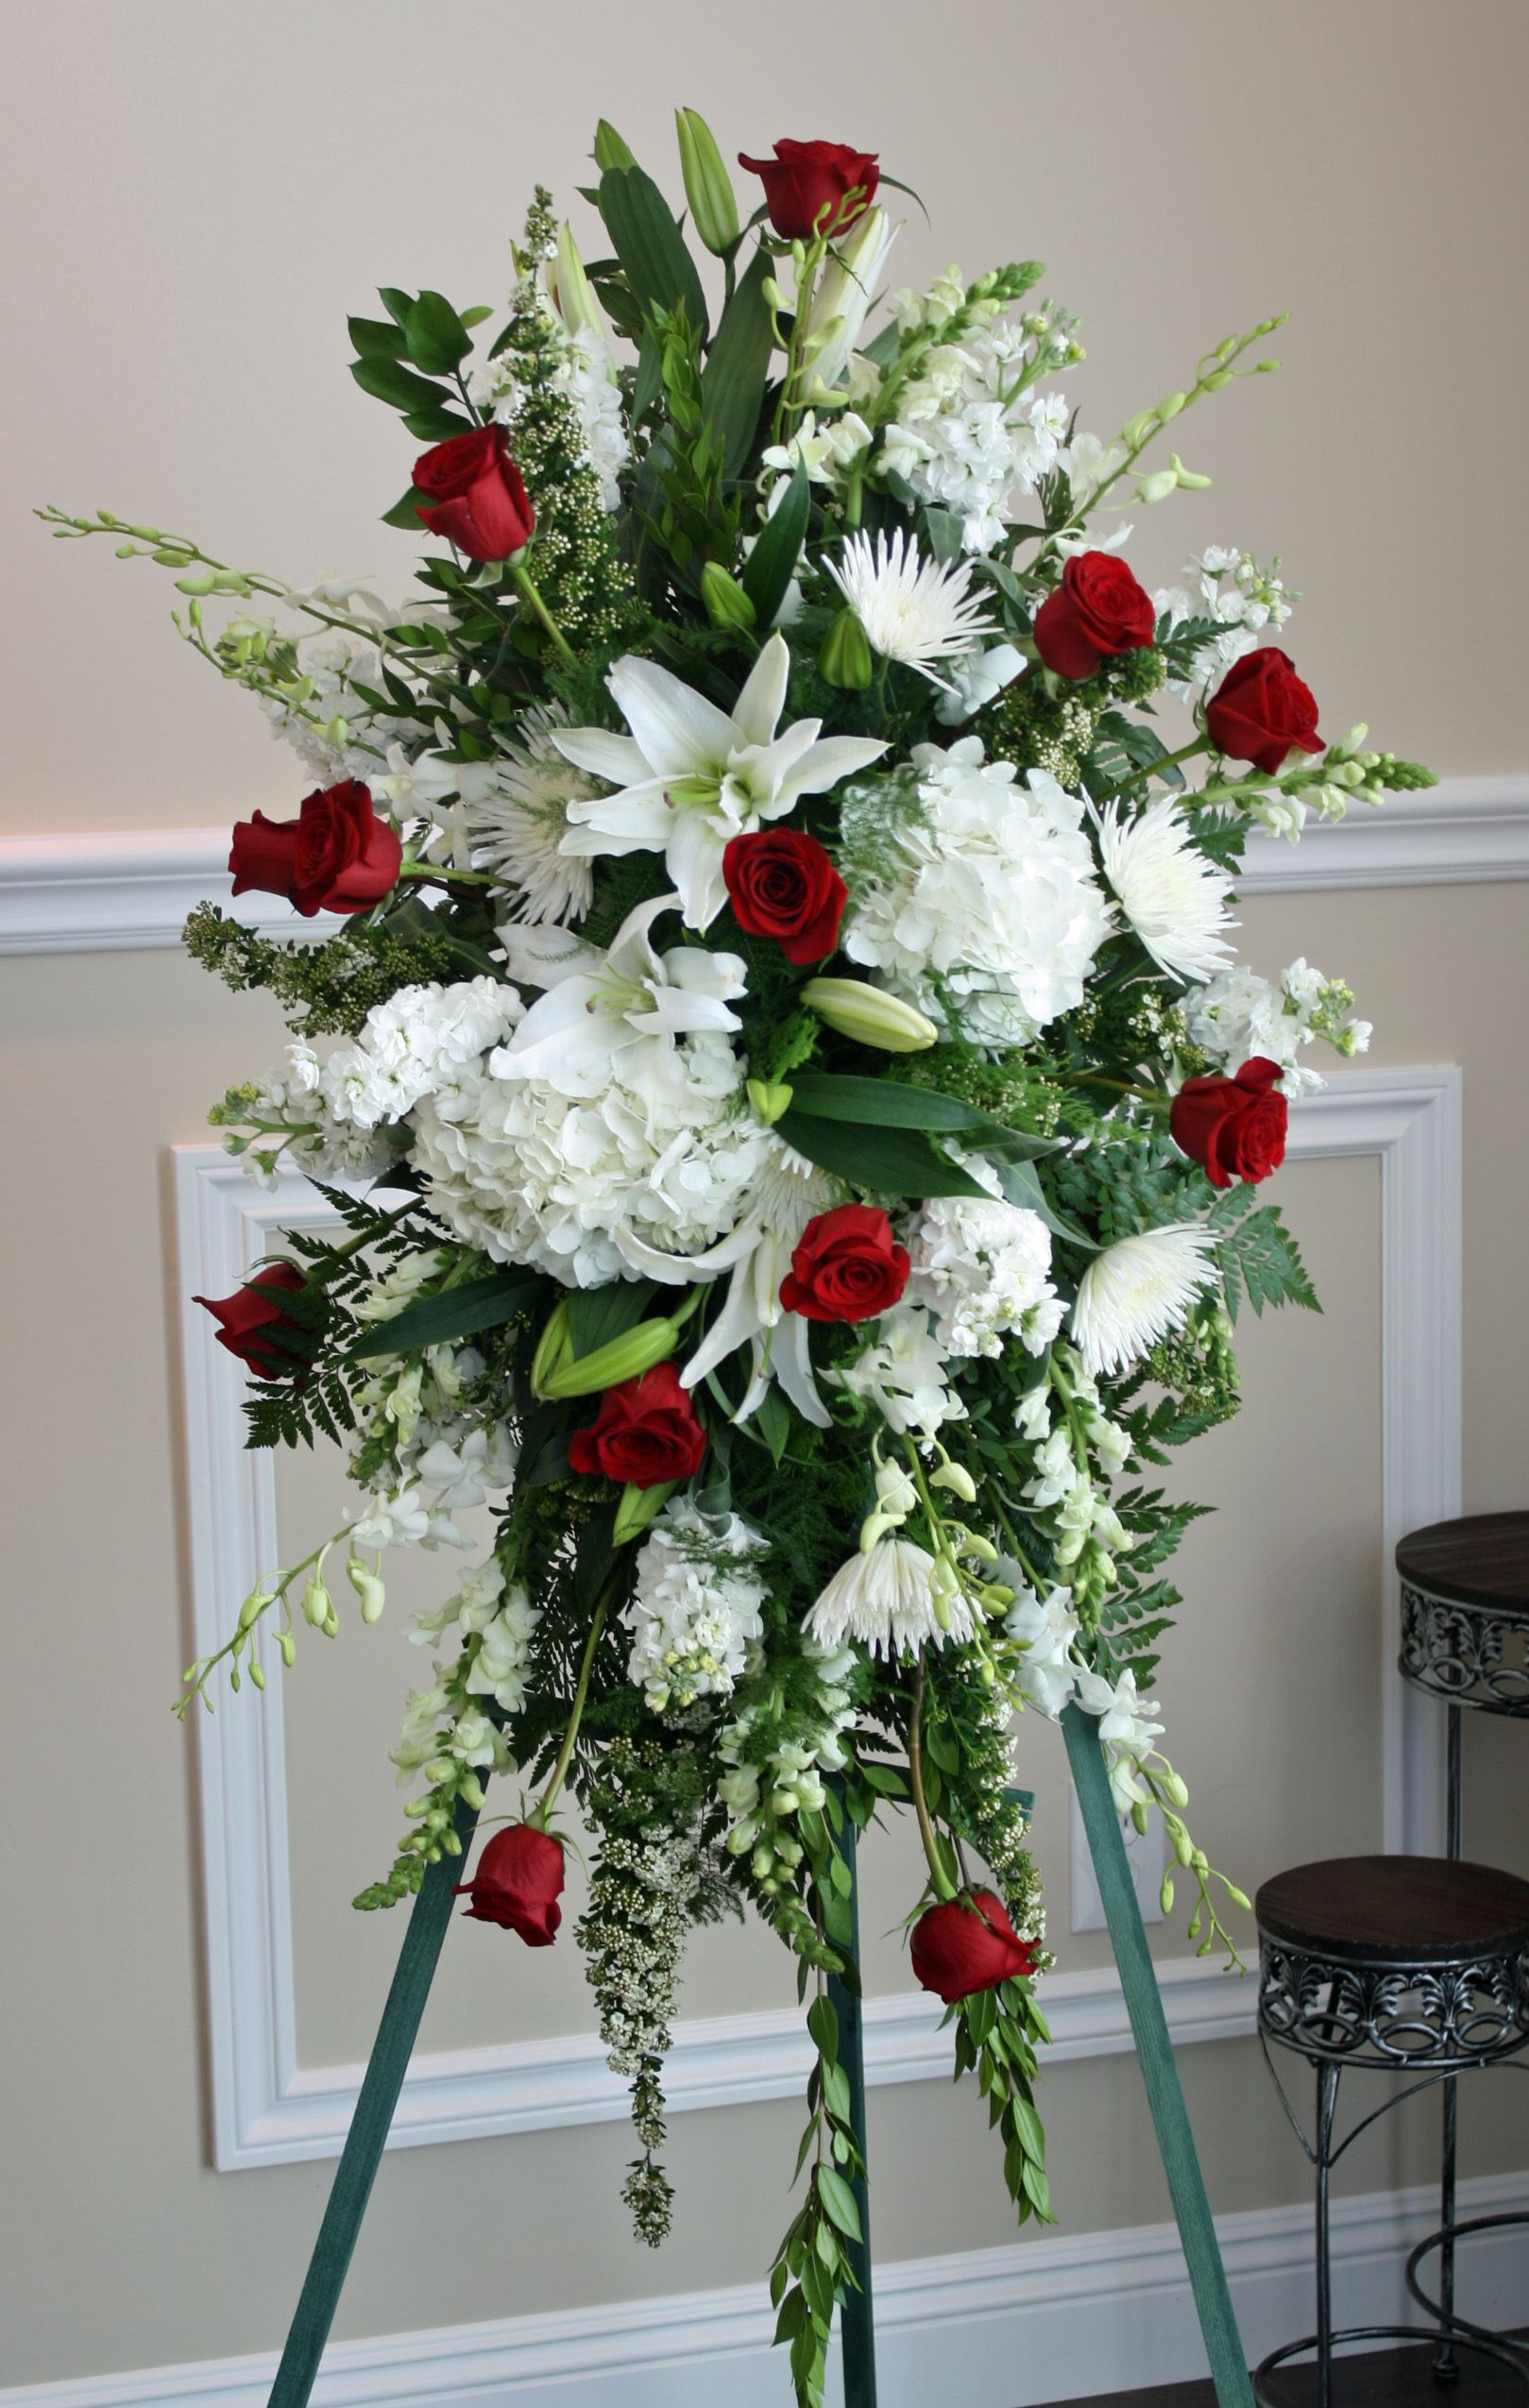 Sympathy flowers funeral flower arrangements unique floral sympathy flowers funeral flower arrangements unique floral designs izmirmasajfo Image collections